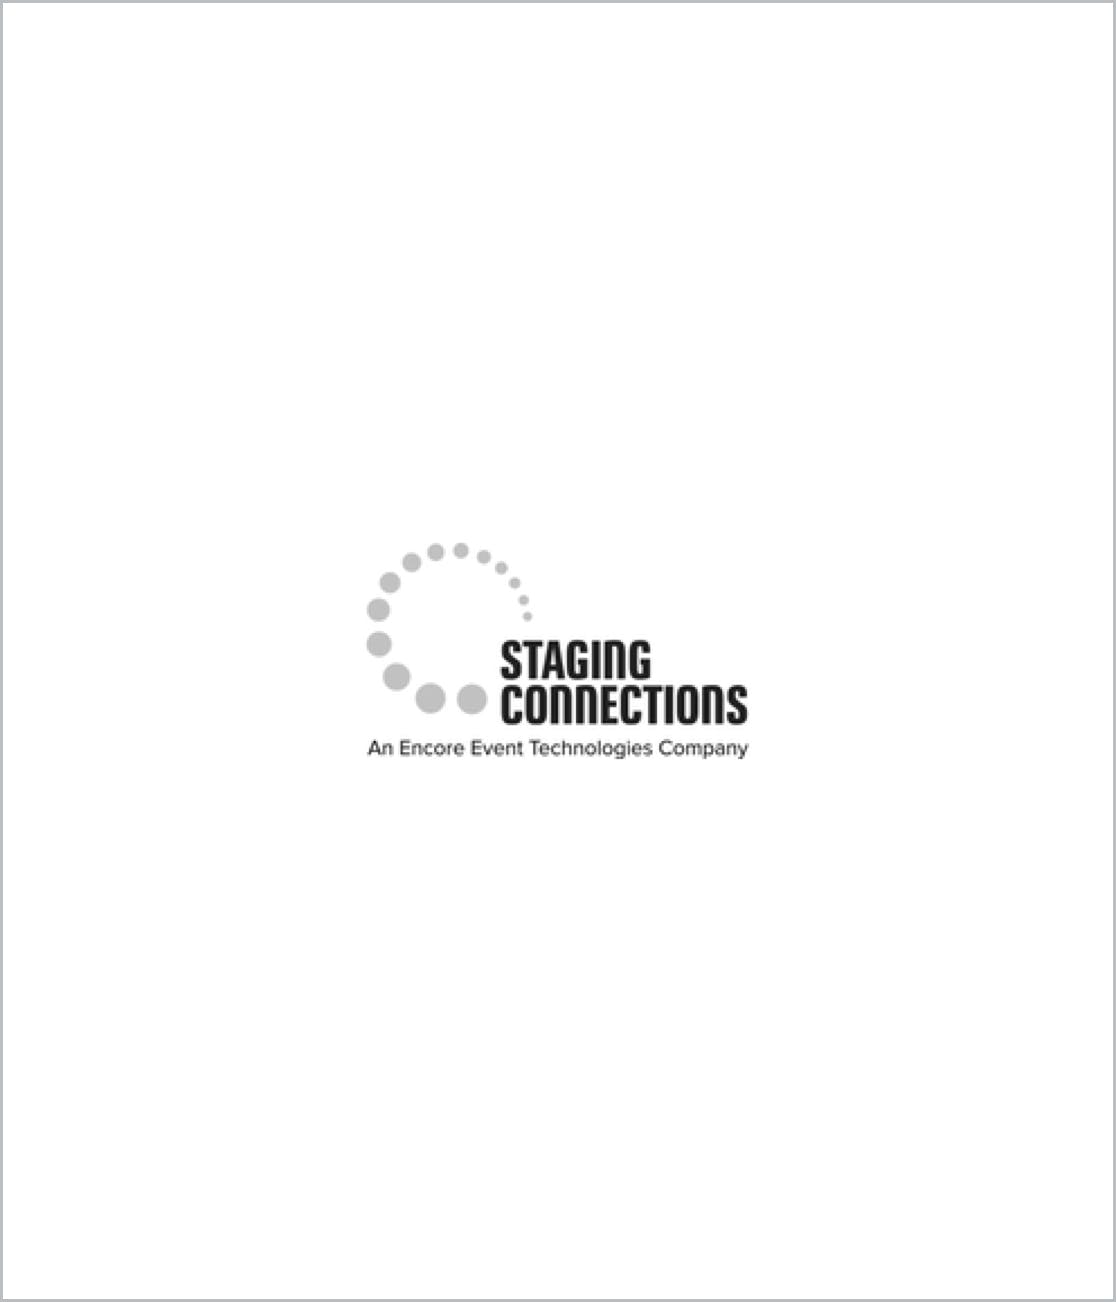 Staging Connections Logo Supplier